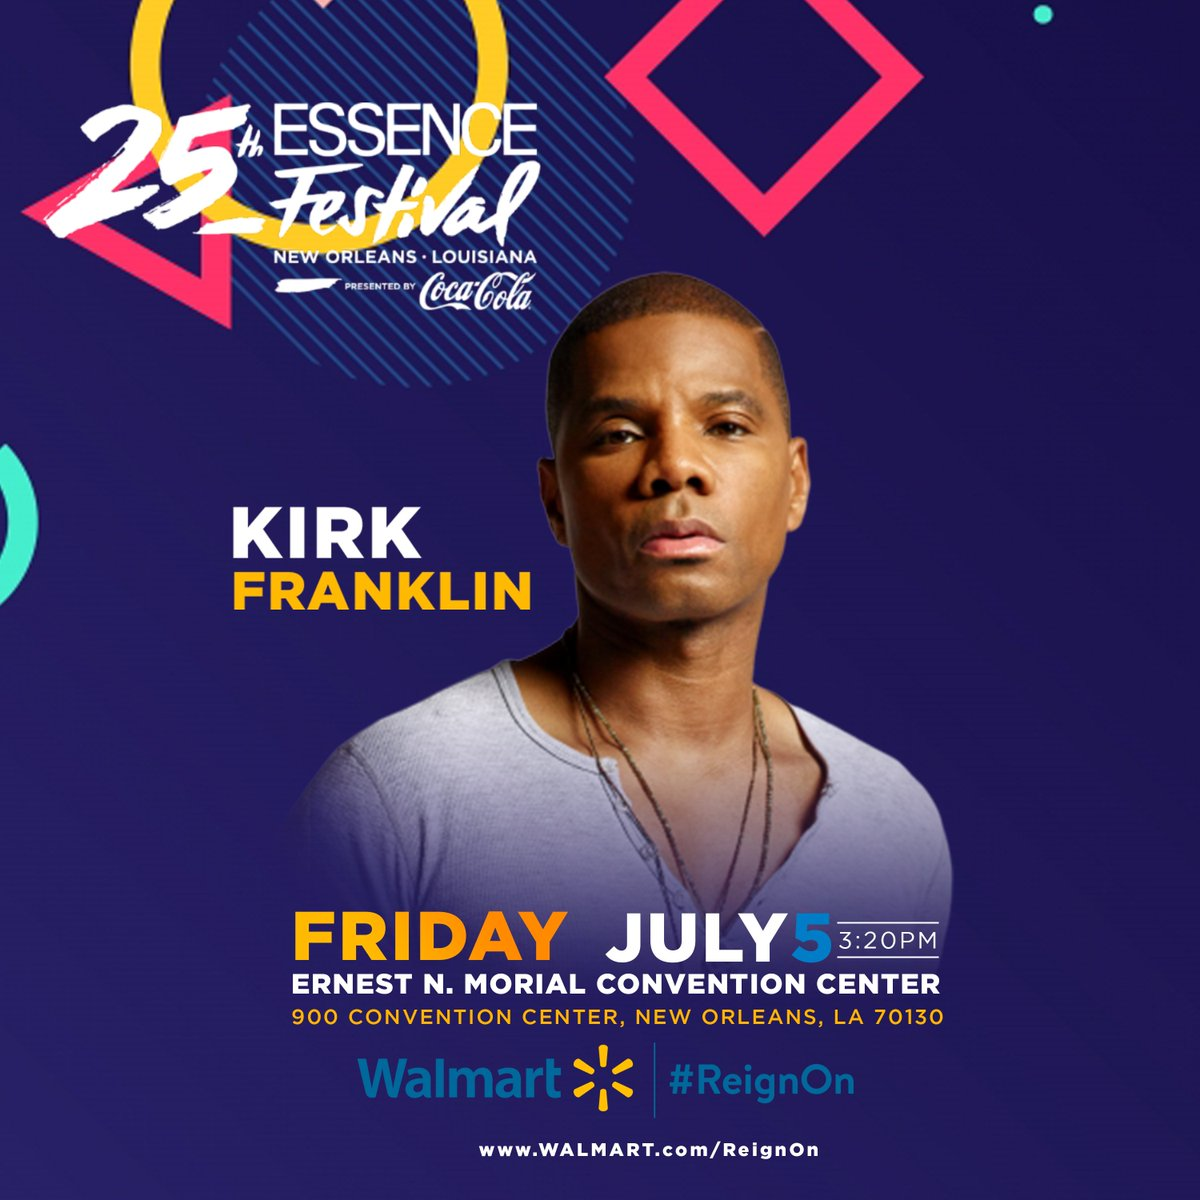 210f22c3204bb They will be at the Walmart Stage in the convention center. #essencefest  #reignonpic.twitter.com/amQP7UqZvm